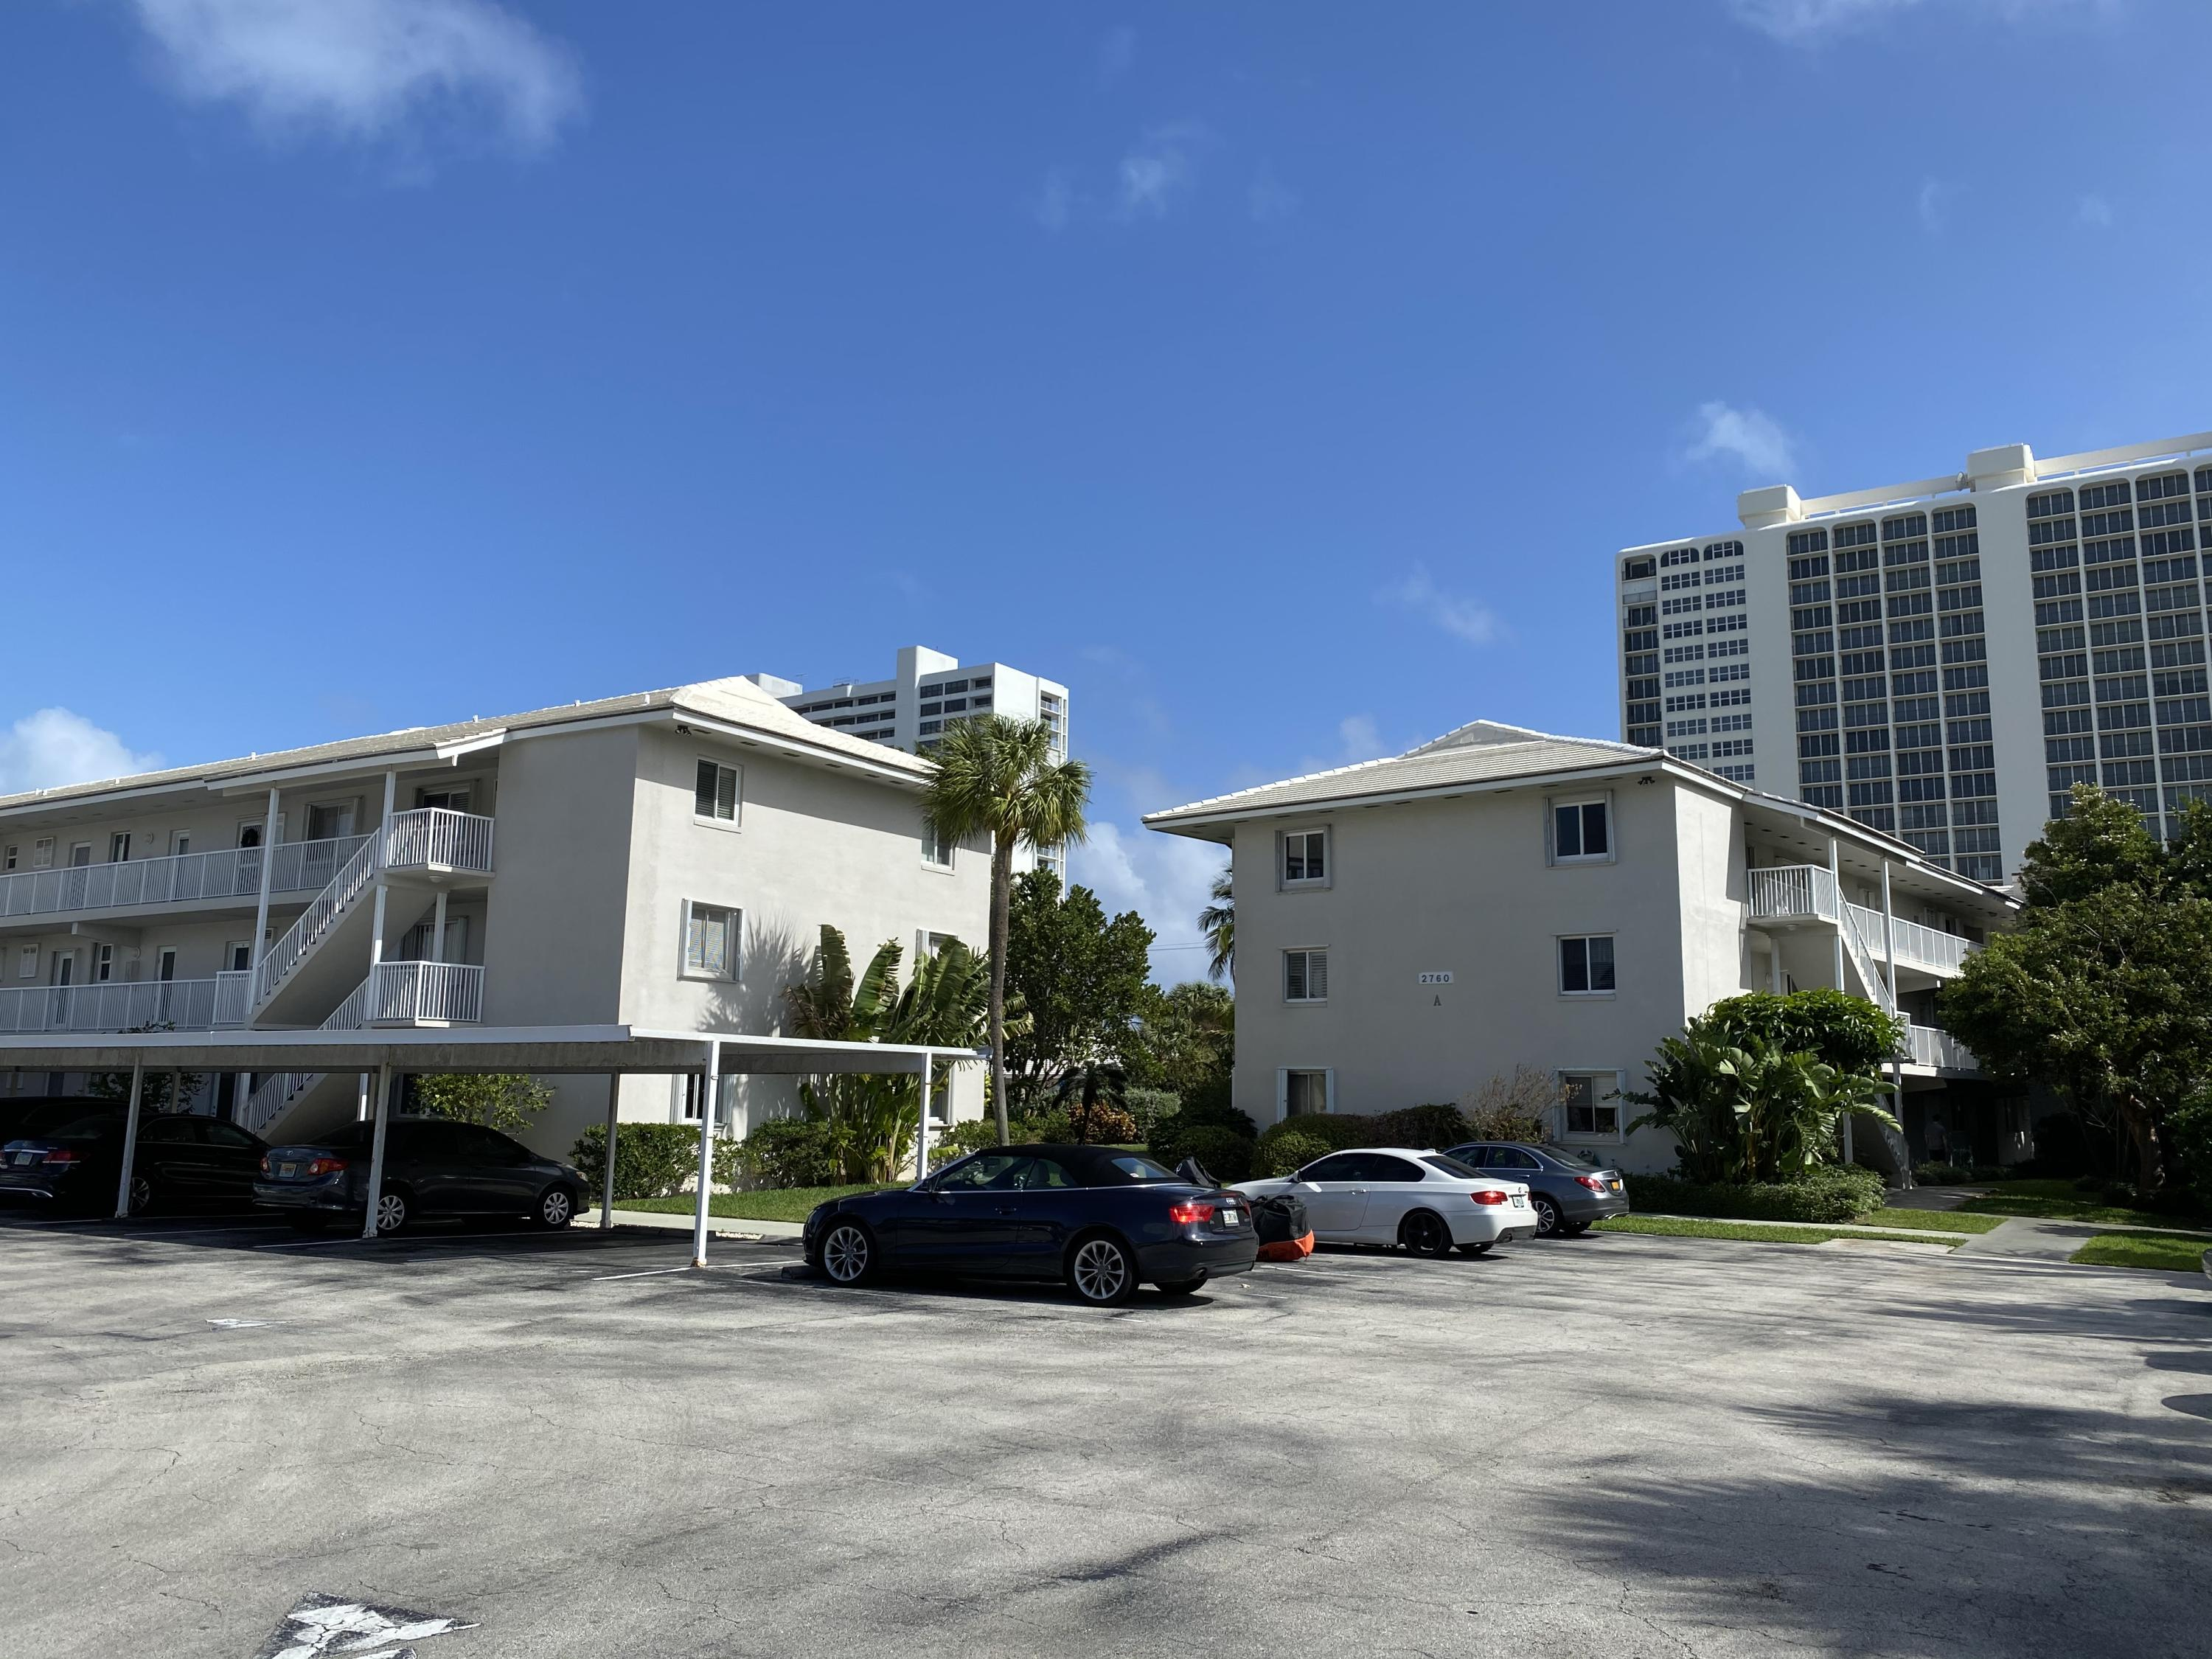 Live across from the ocean in this beautiful first floor condominium. Updated kitchen and bathrooms, screened patio, assigned parking community pool, clubhouse and storage. Walking distance to Deerfield beach pier, restaurants and shopping.   The information herein is deemed reliable and subject to errors, omissions or changes without notice.  The information has been derived from architectural plans or county records. Buyer should verify all measurements.